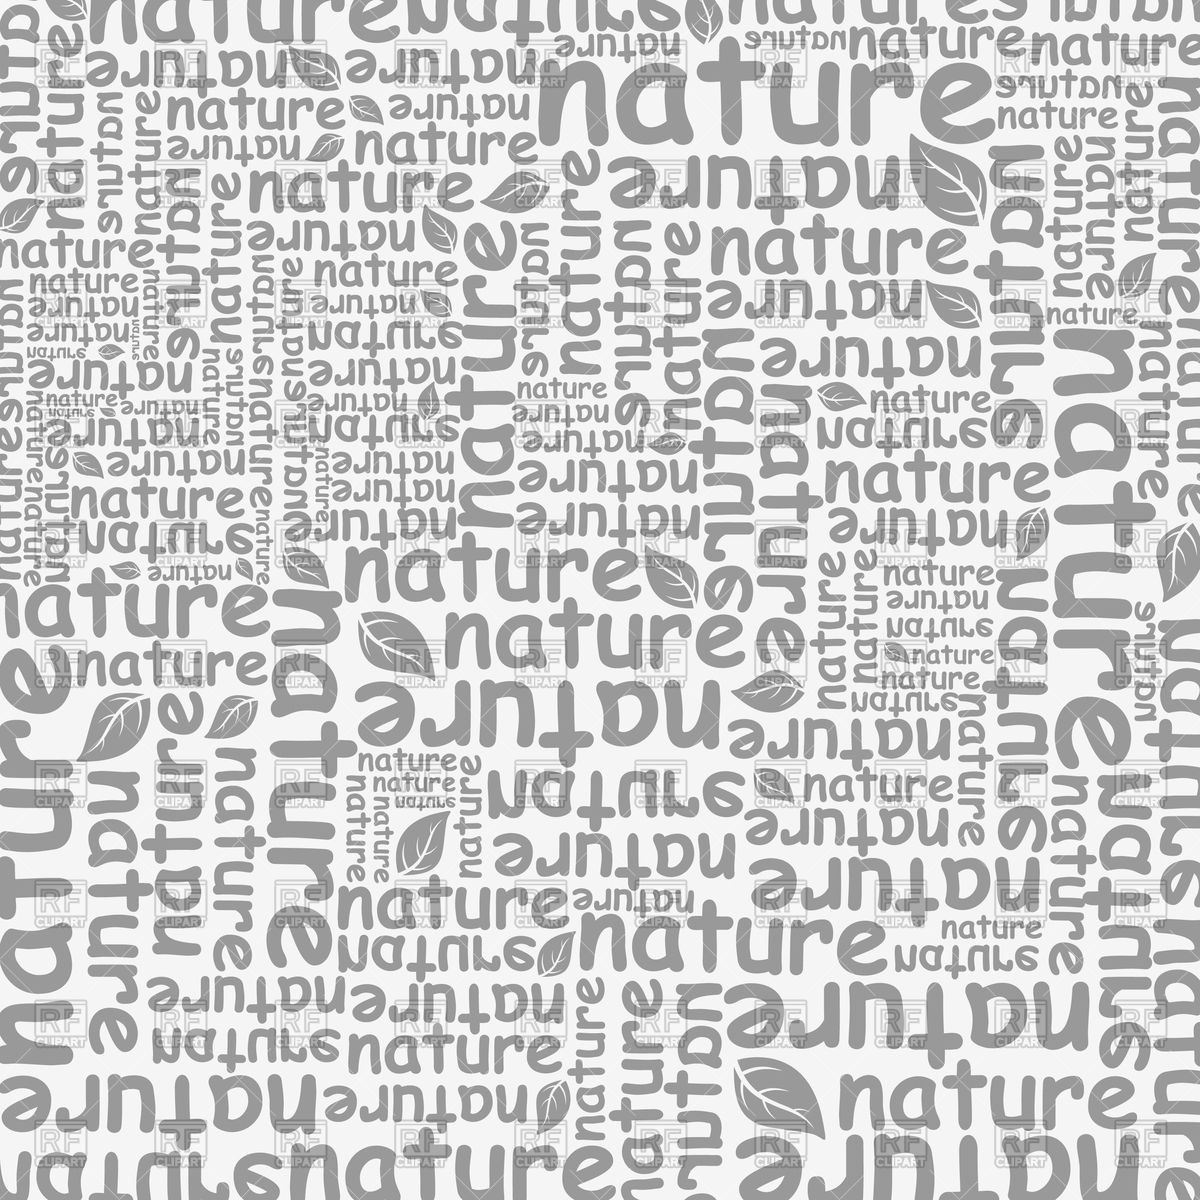 Background with words nature Vector Image of Backgrounds Textures 1200x1200